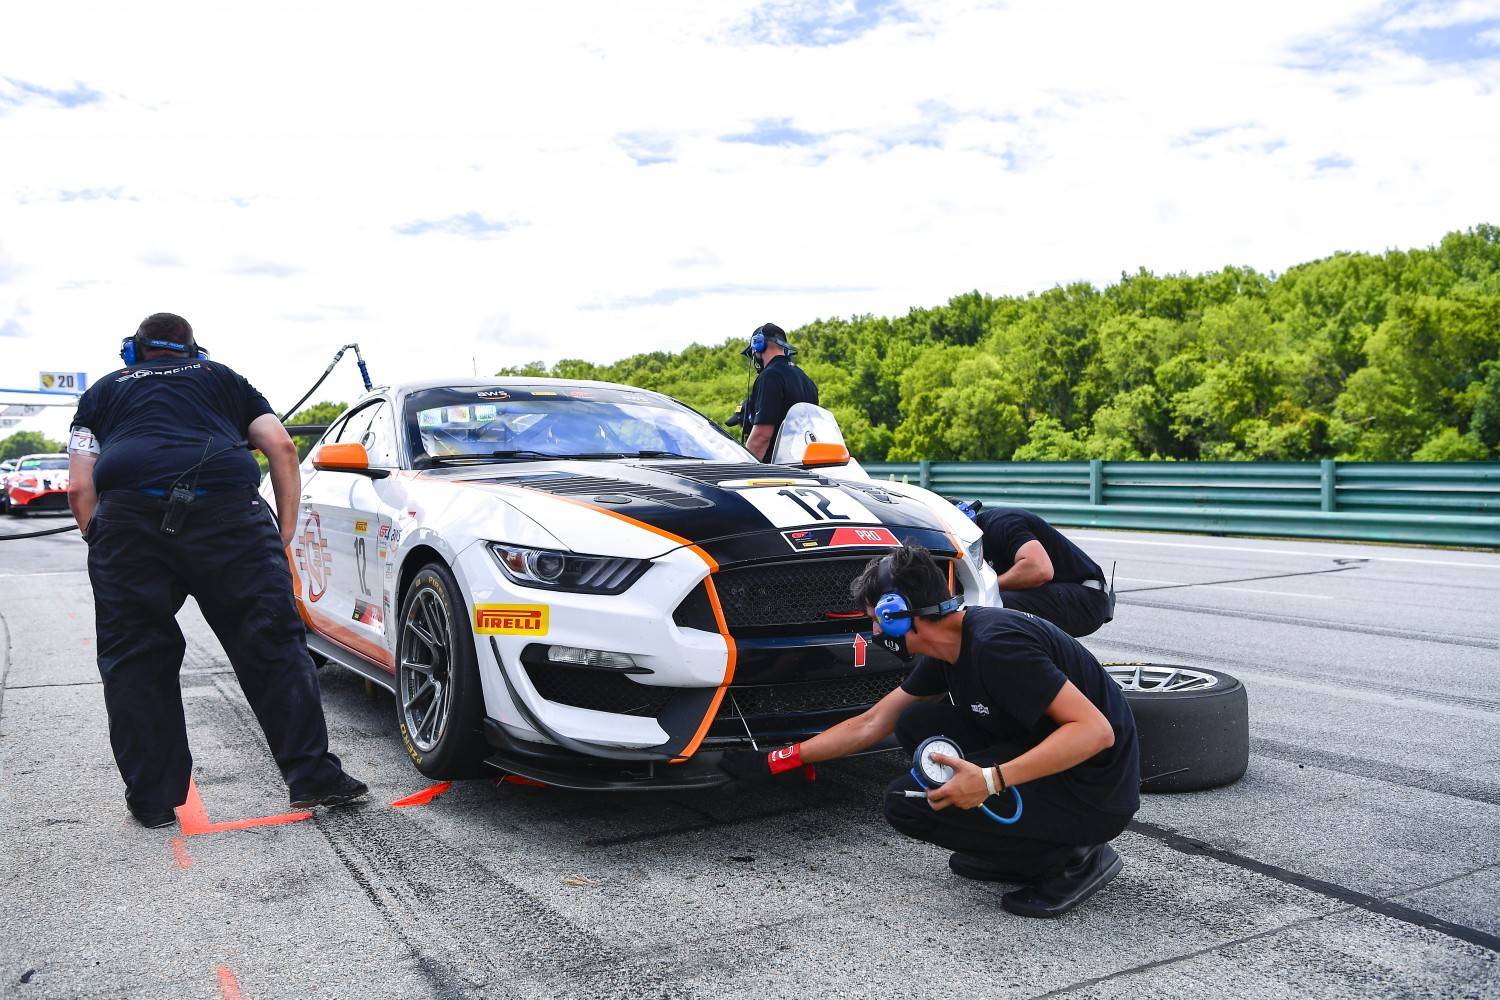 #12 GT4 Sprint, Ian Lacy Racing, Drew Staveley, Ford Mustang GT4, 2020 SRO Motorsports Group - VIRginia International Raceway, Alton VA  | SRO Motorsports Group